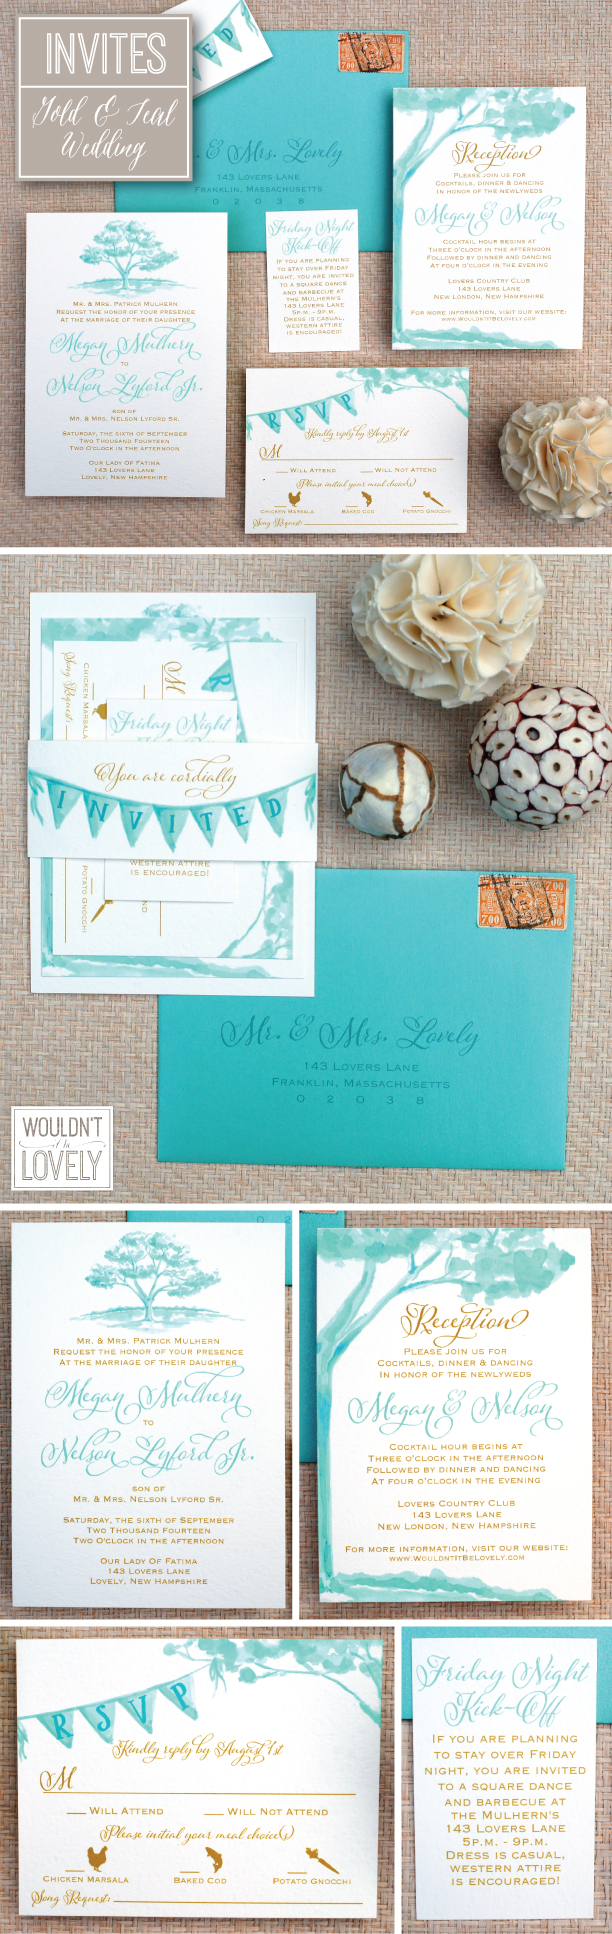 gold and teal wedding invites